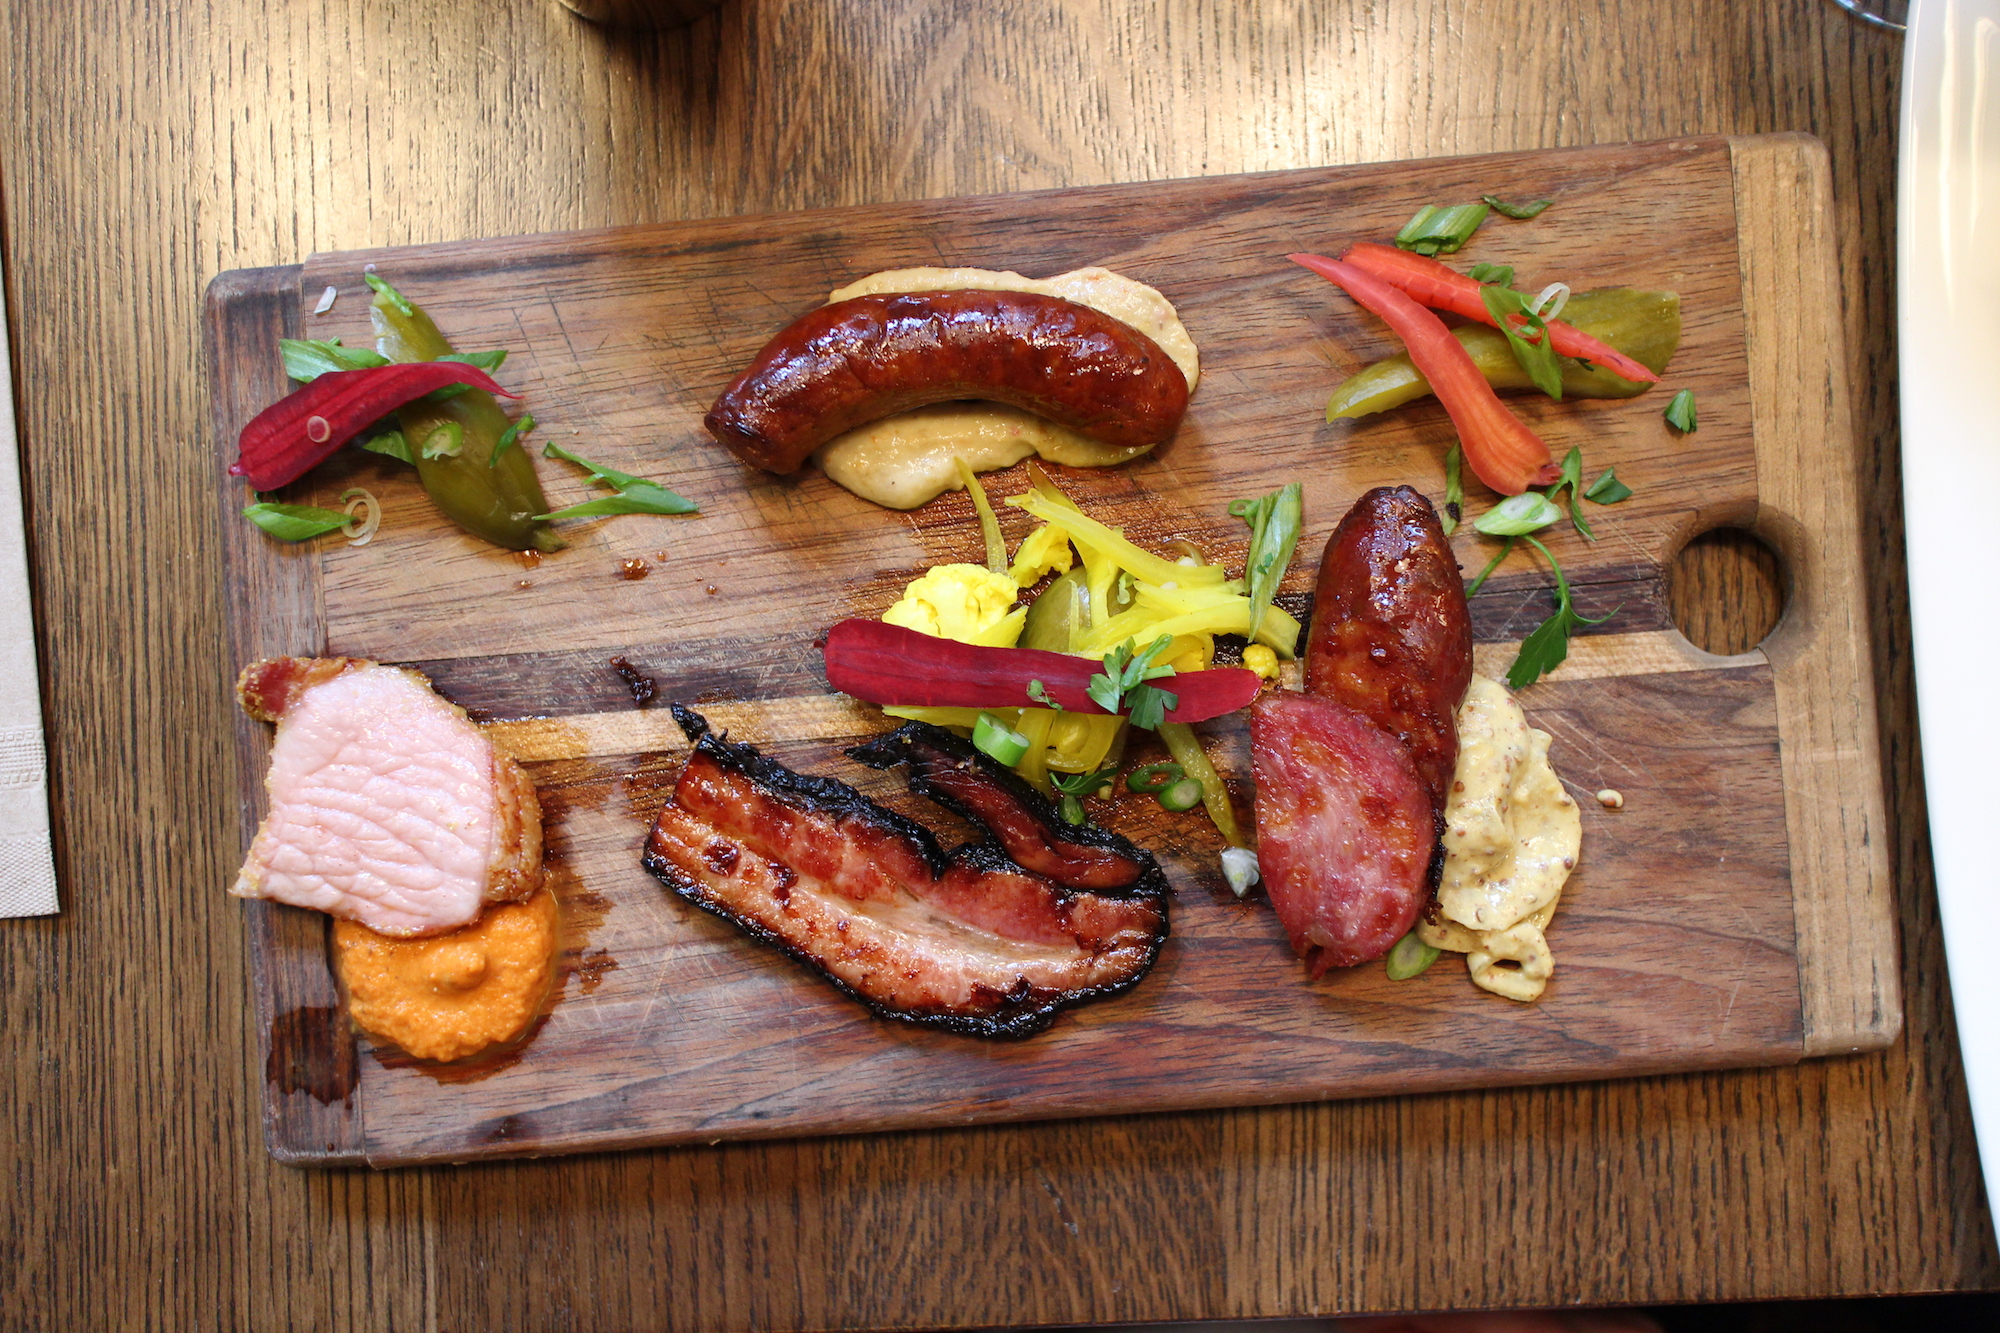 Wolves Breakfast | house cured peameal bacon, smoked medina bacon, parisienne a l'ail, andouille and merguez sausage